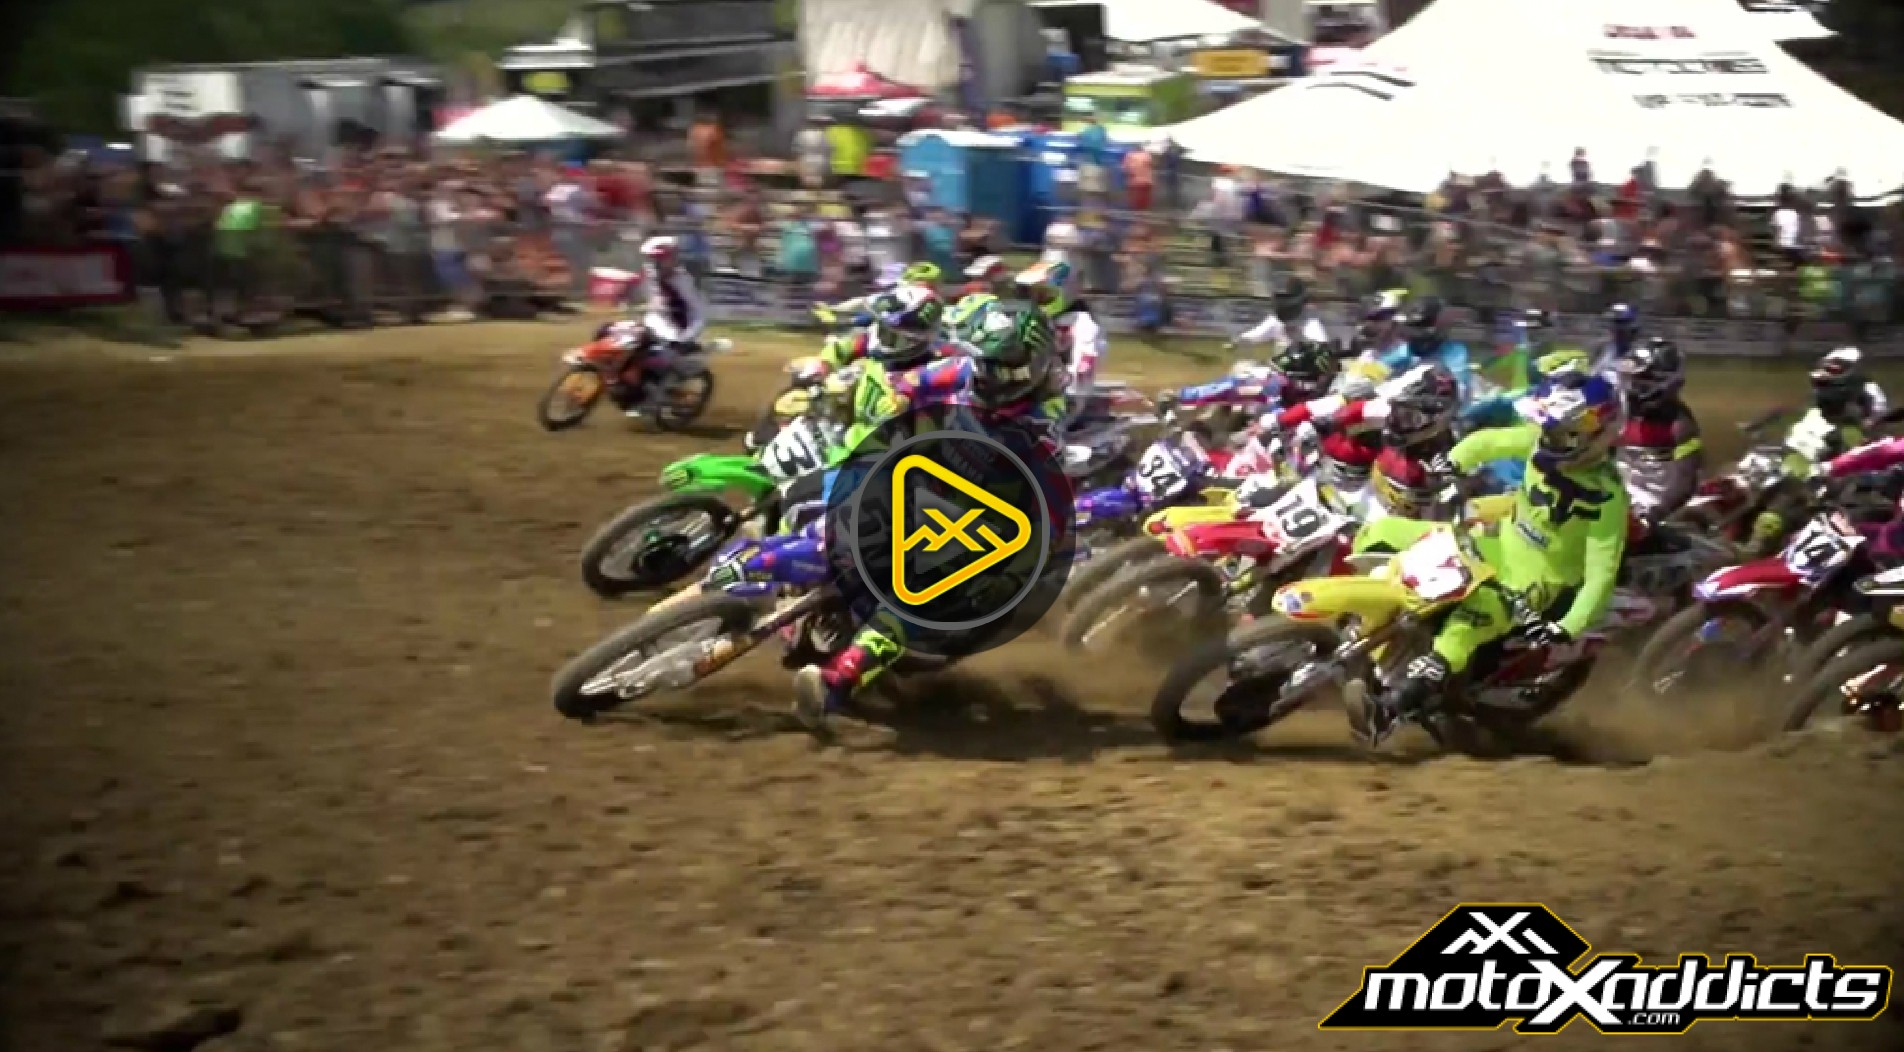 Watch All 4 Motos of 2016 Tennessee National in Full